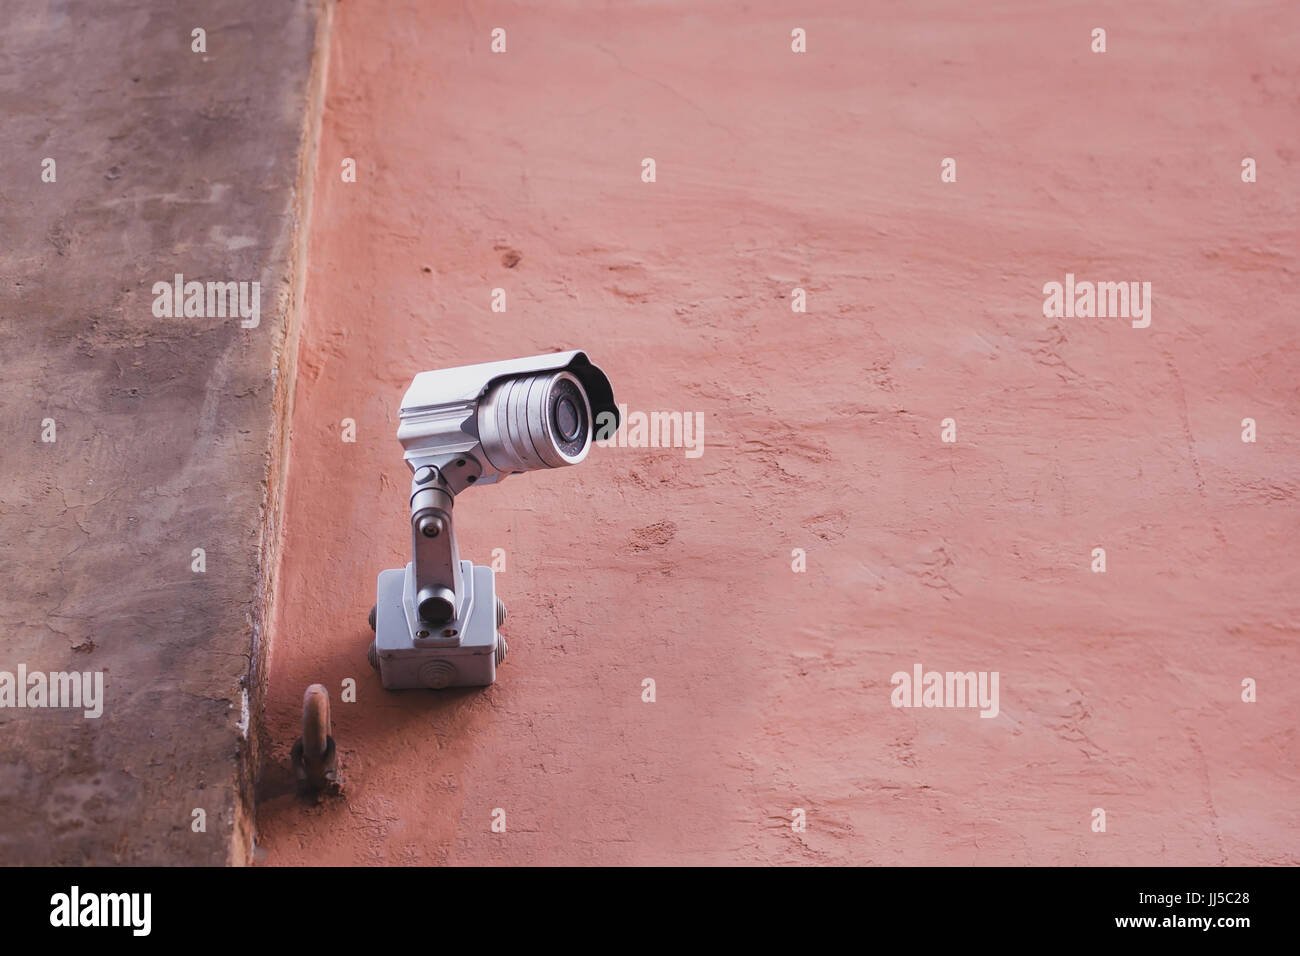 outdoor security camera for surveillance - Stock Image